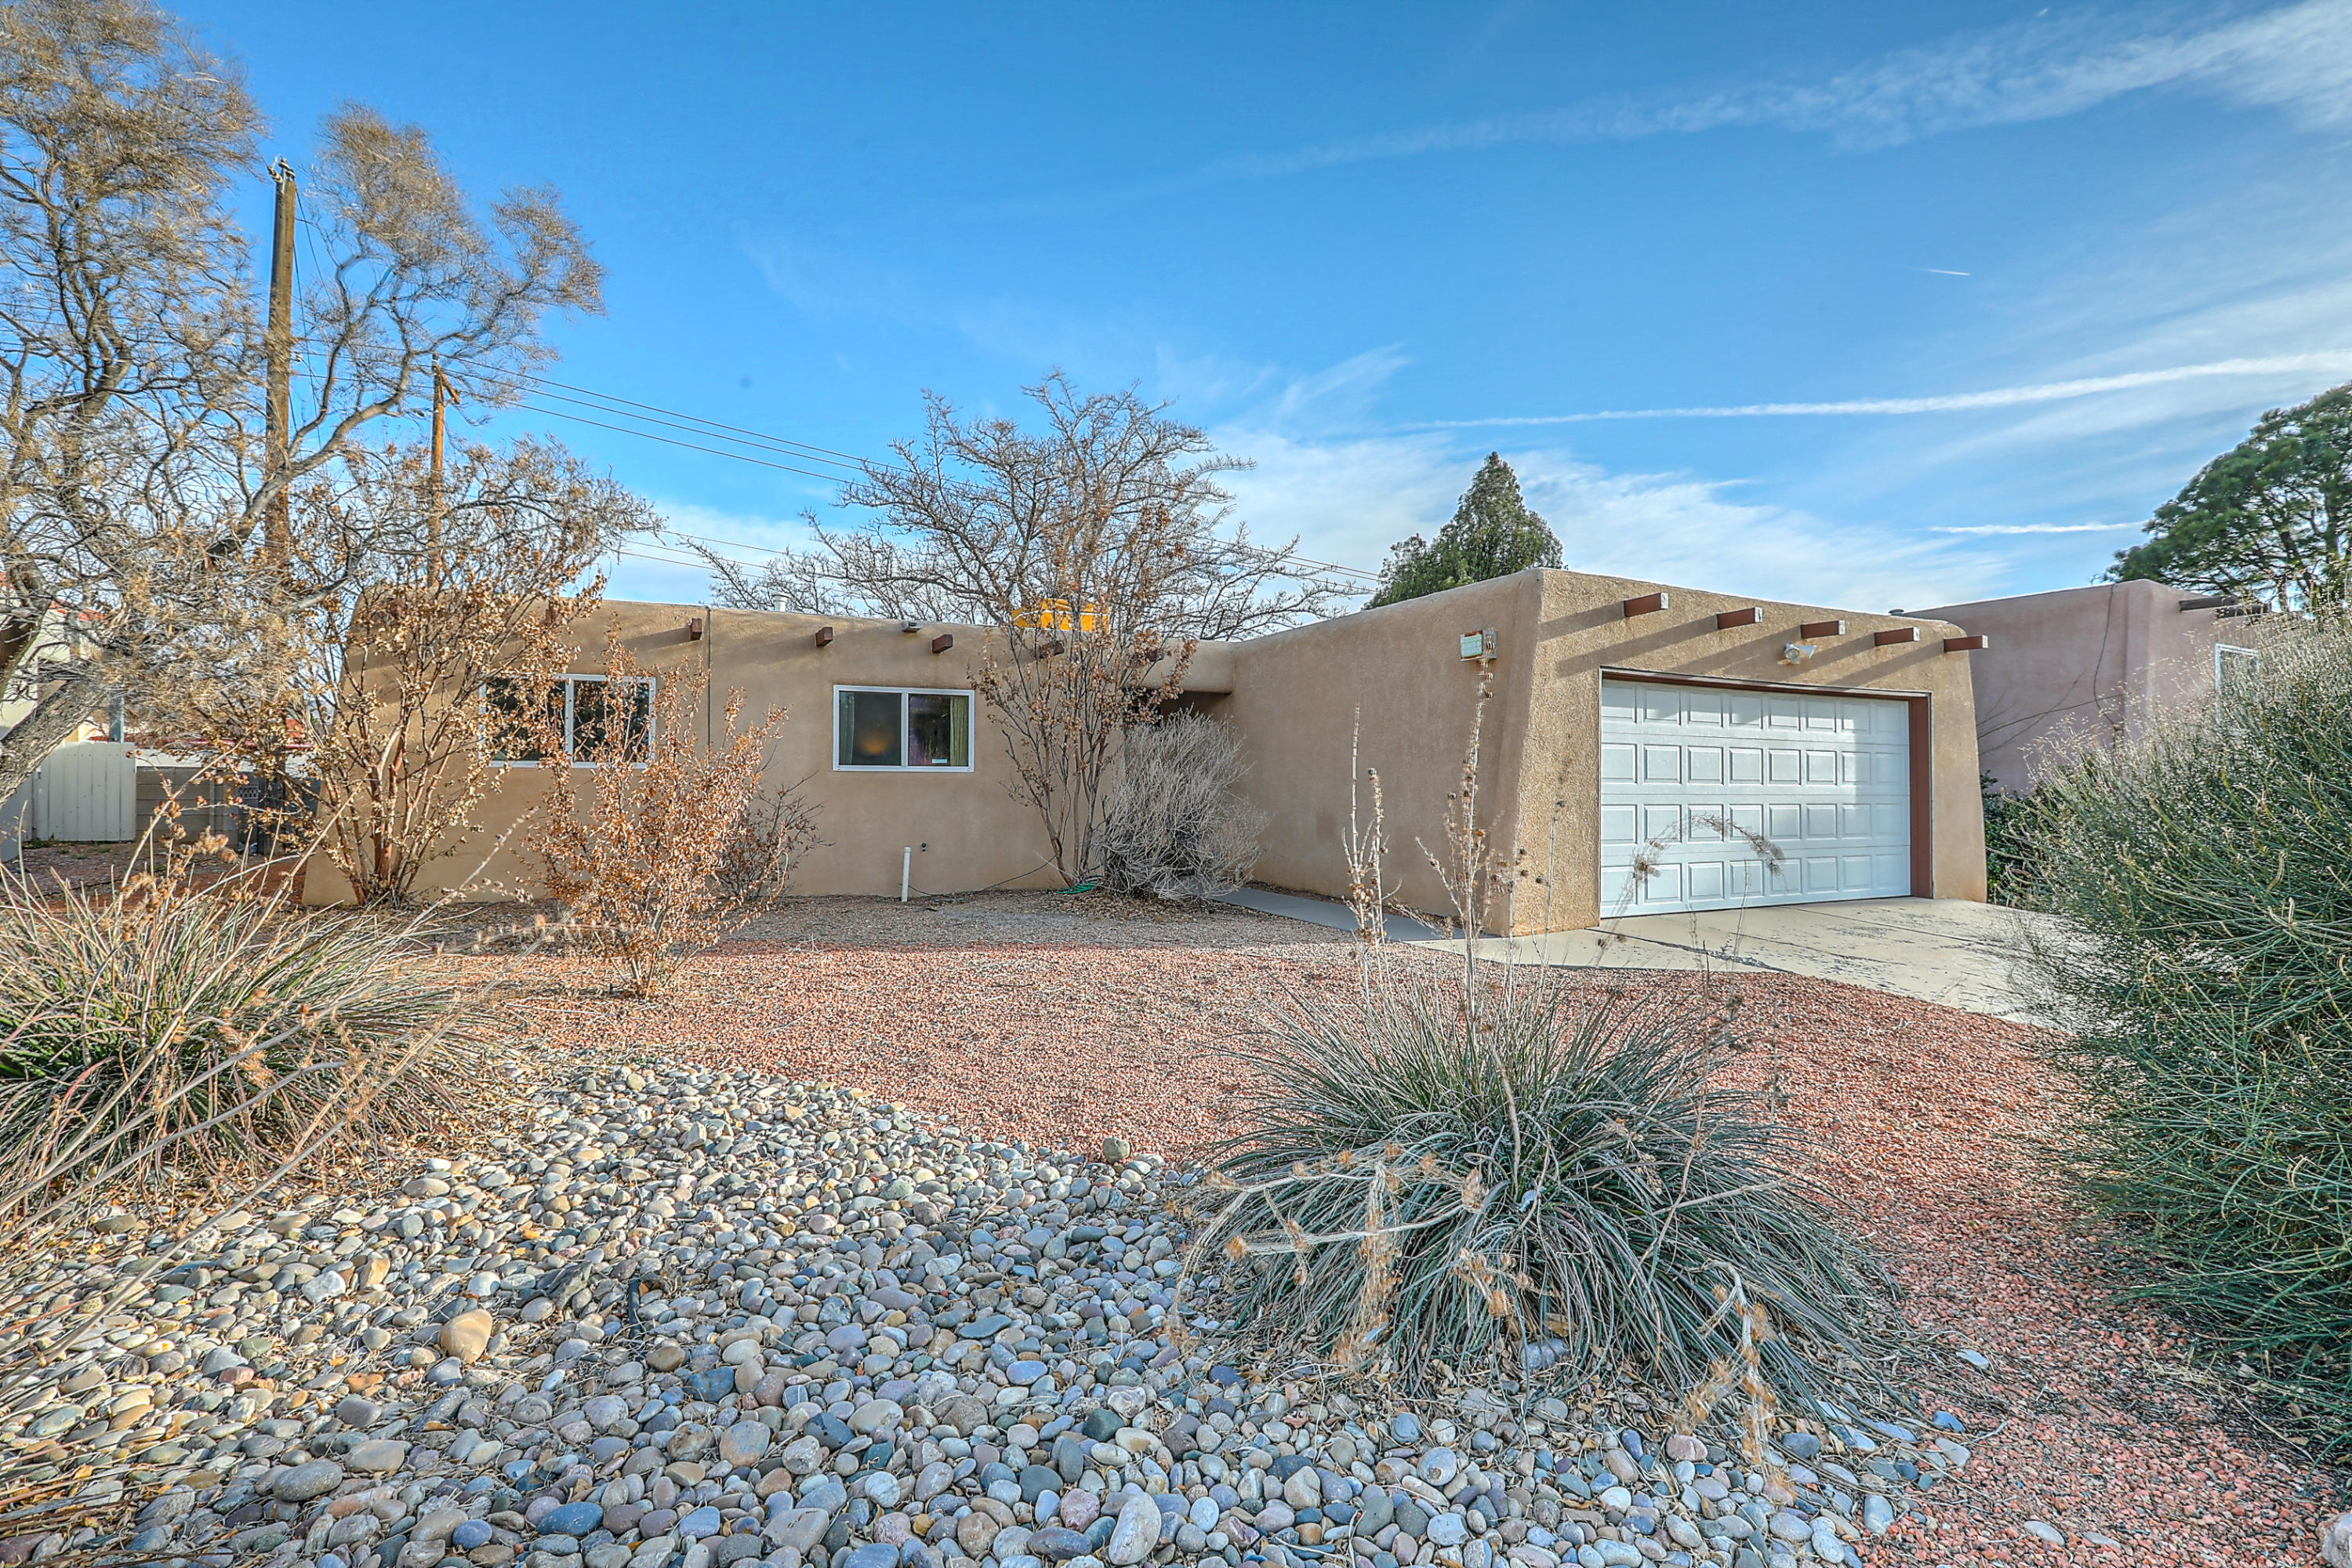 Welcome to this magnificent charmer! Mountain views from the backyard!  Many updates, and to mention just a few: Interior paint, water heater, remodeled baths, Silicone roof, Mastercool , kitchen counter tops and the list continues! Gorgeous wood floors in living/kitchen spaces, 1 yr old carpeting in the bedrooms!  Its just a beauty that you will not want to miss!